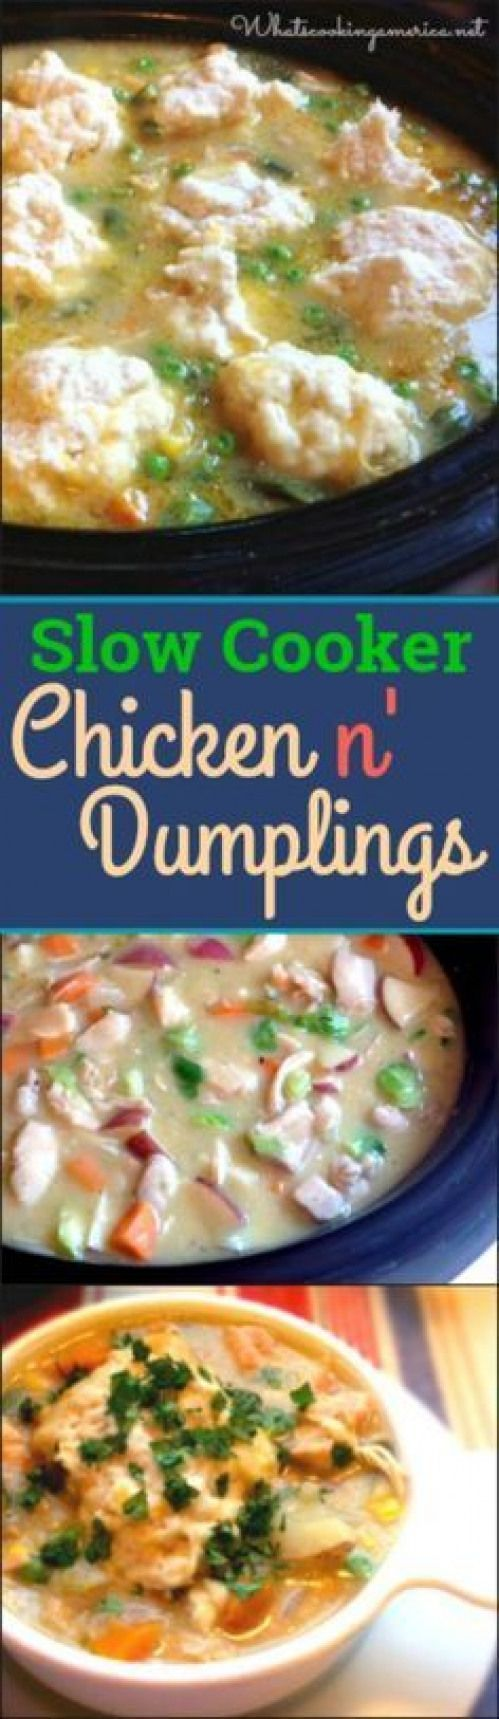 A classic Chicken and Dumplings recipe easy to dump and go in the slow cooker #chicken #dumplings #slowcooker #crockpot #detoxsoup #chickendumplingscrockpot A classic Chicken and Dumplings recipe easy to dump and go in the slow cooker #chicken #dumplings #slowcooker #crockpot #detoxsoup #chickendumplingscrockpot